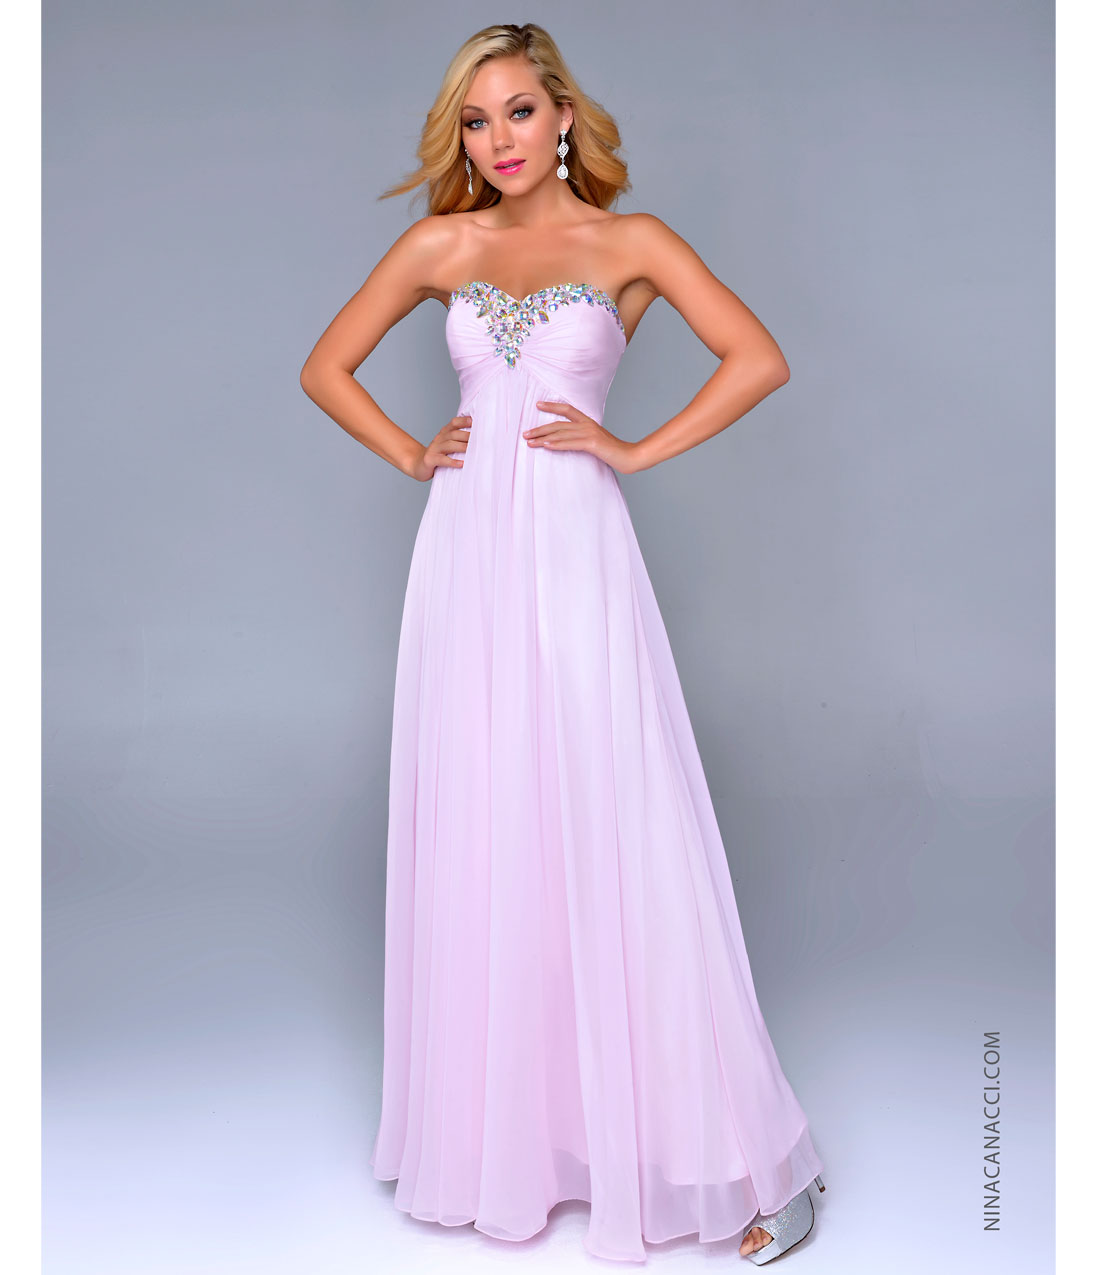 Baby Pink Prom Dresses - Long Dresses Online